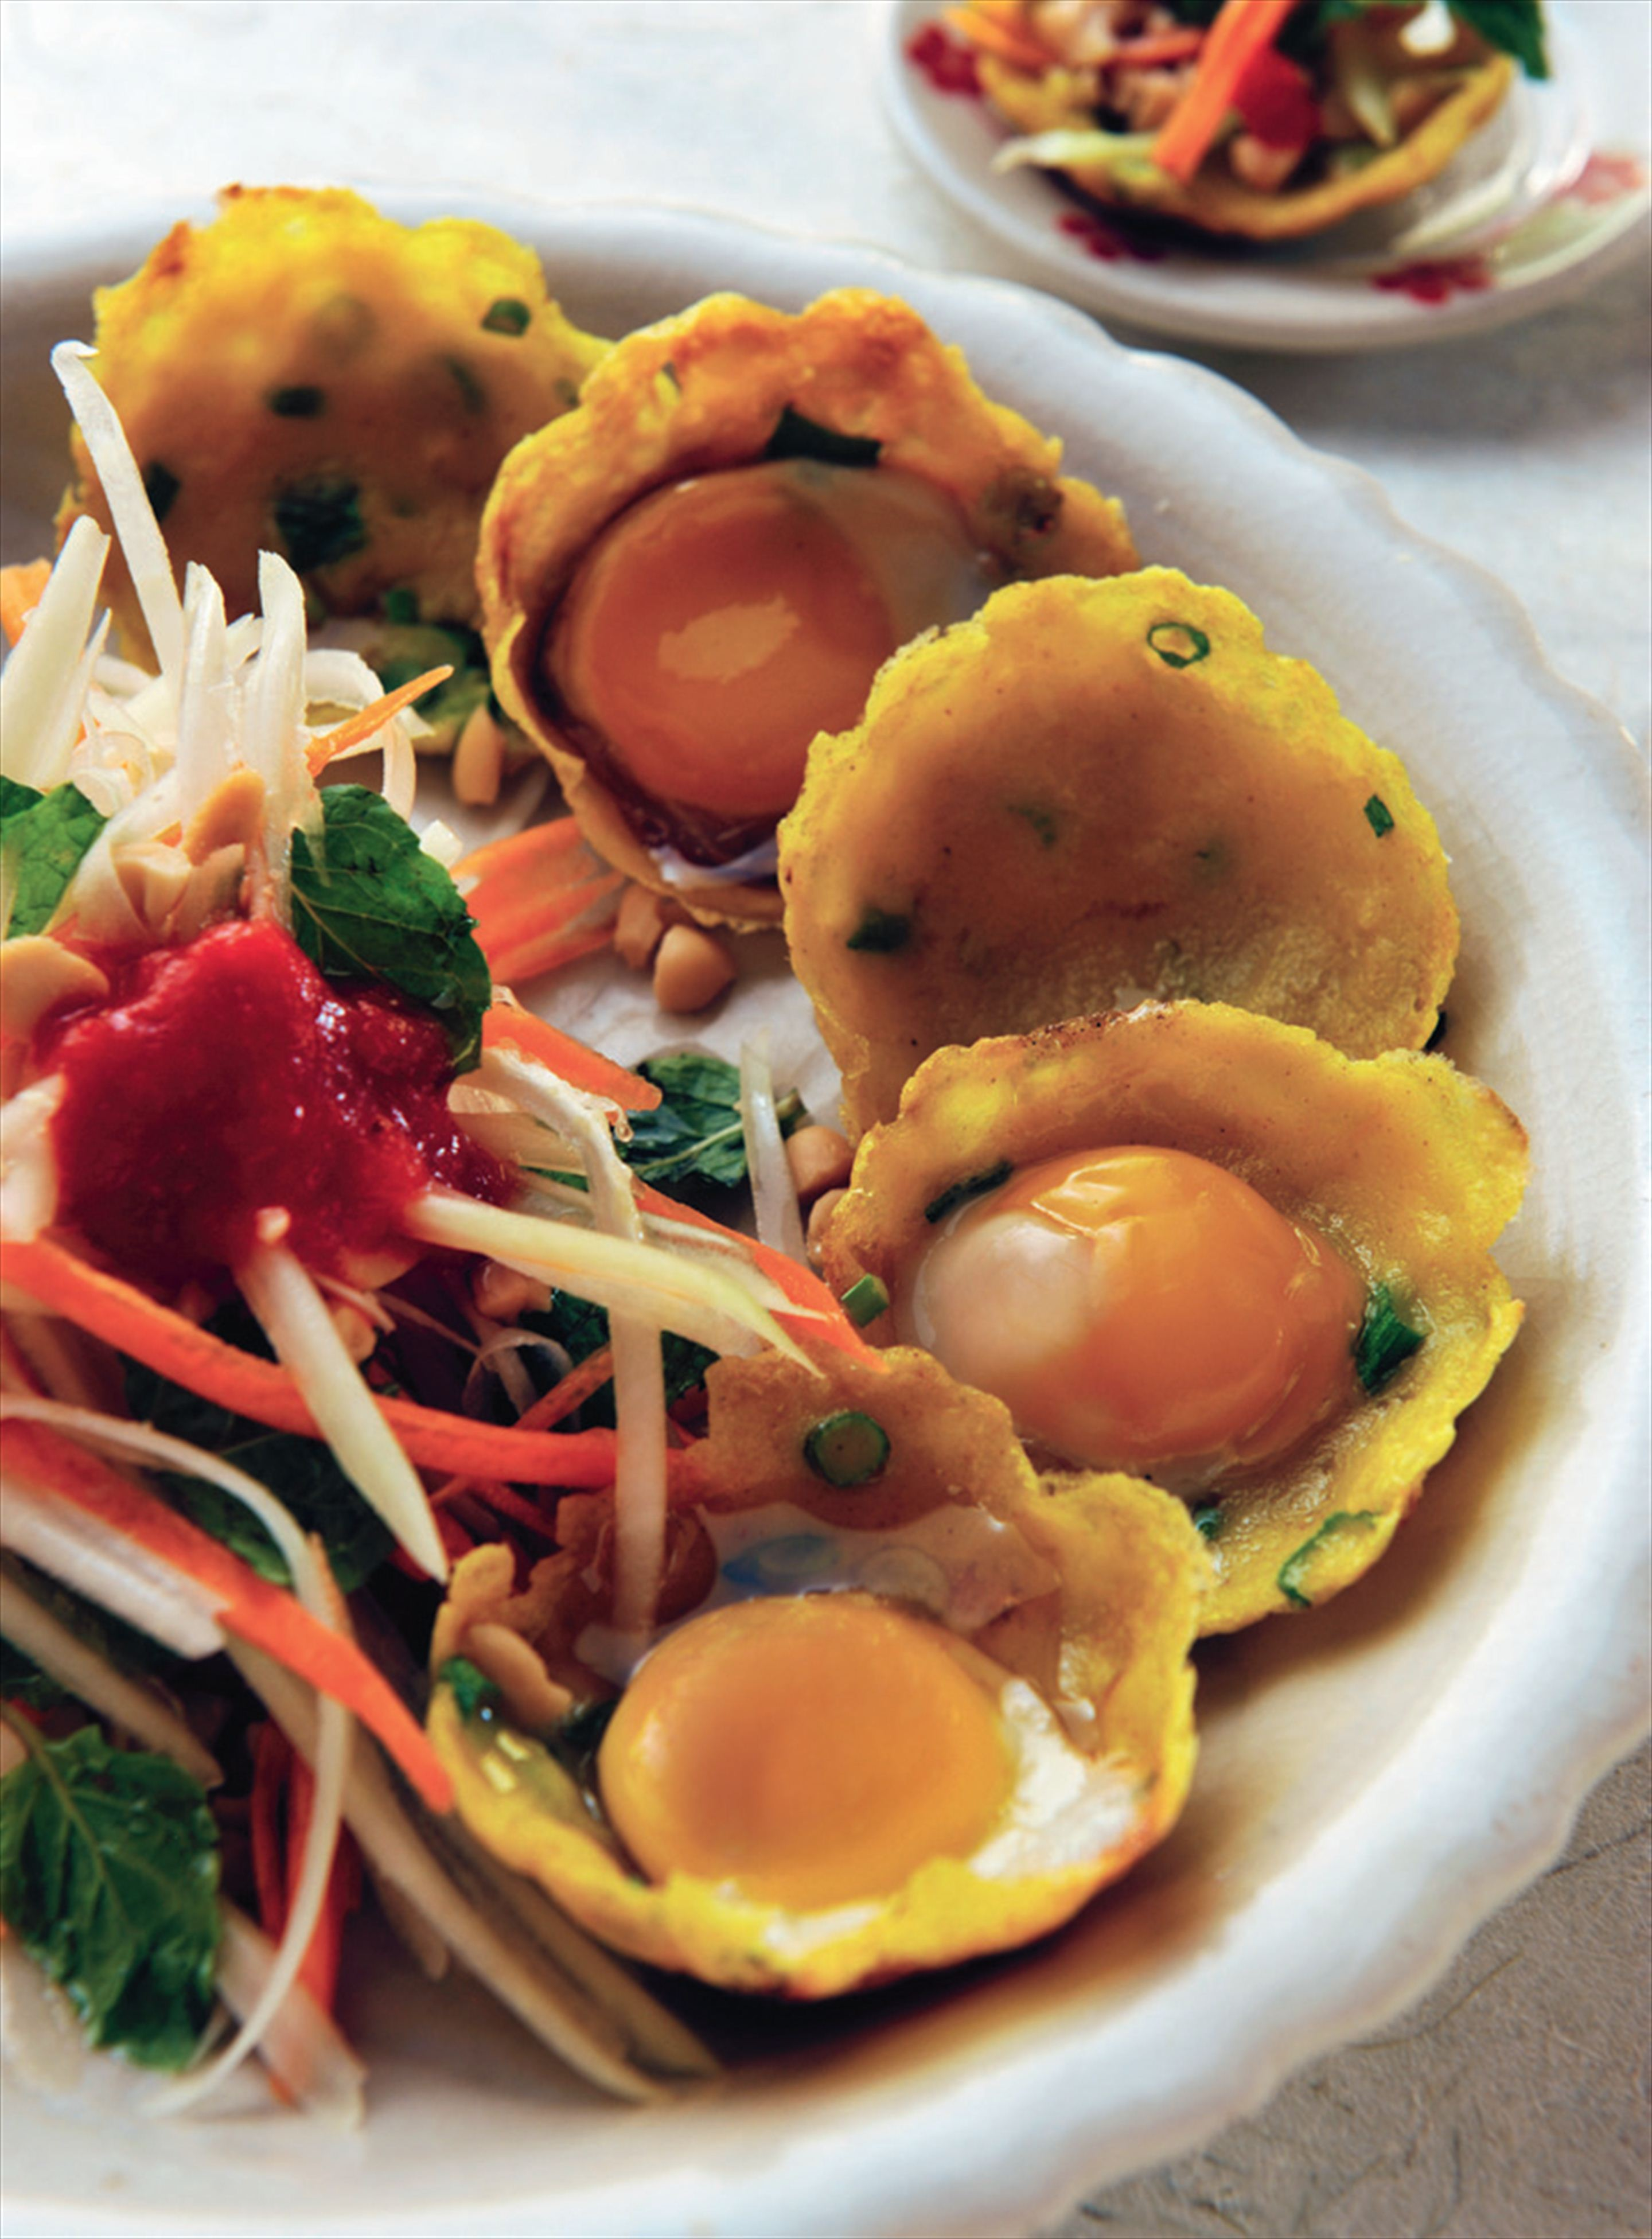 Rice flour pancakes with quail eggs